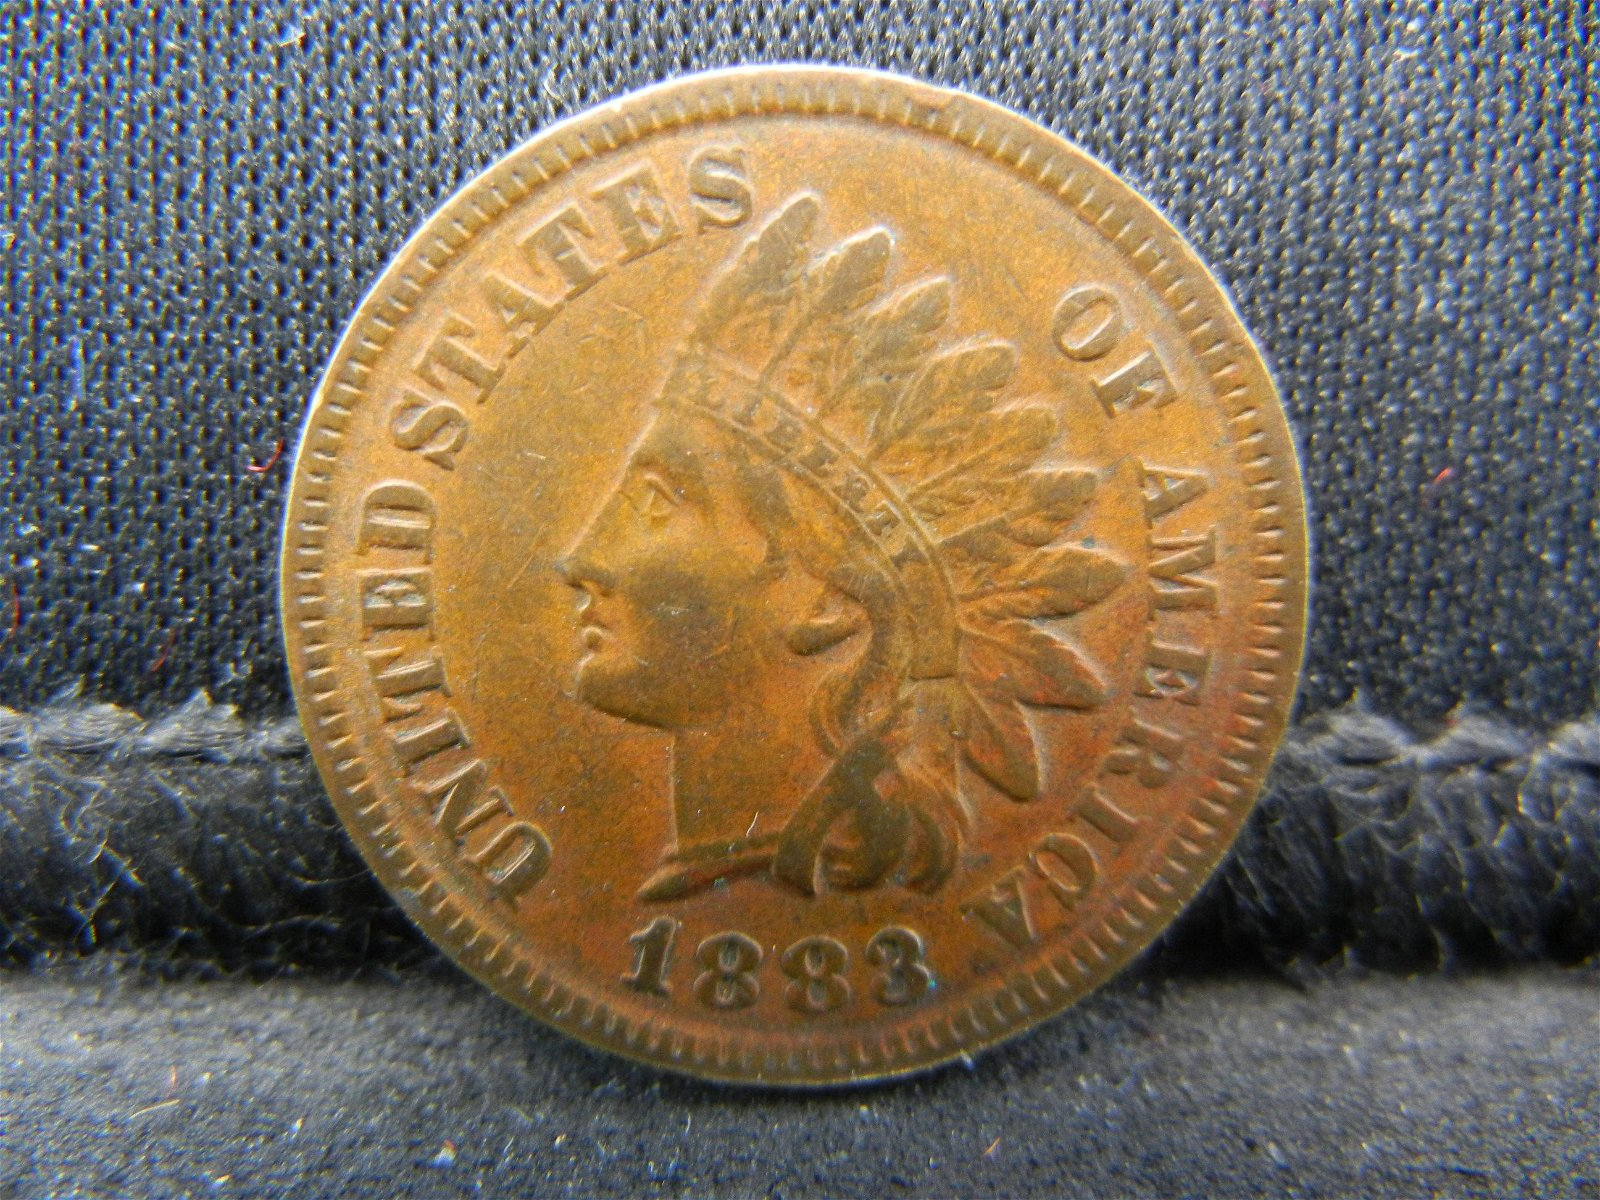 1883 United States Indian Head Penny Cent